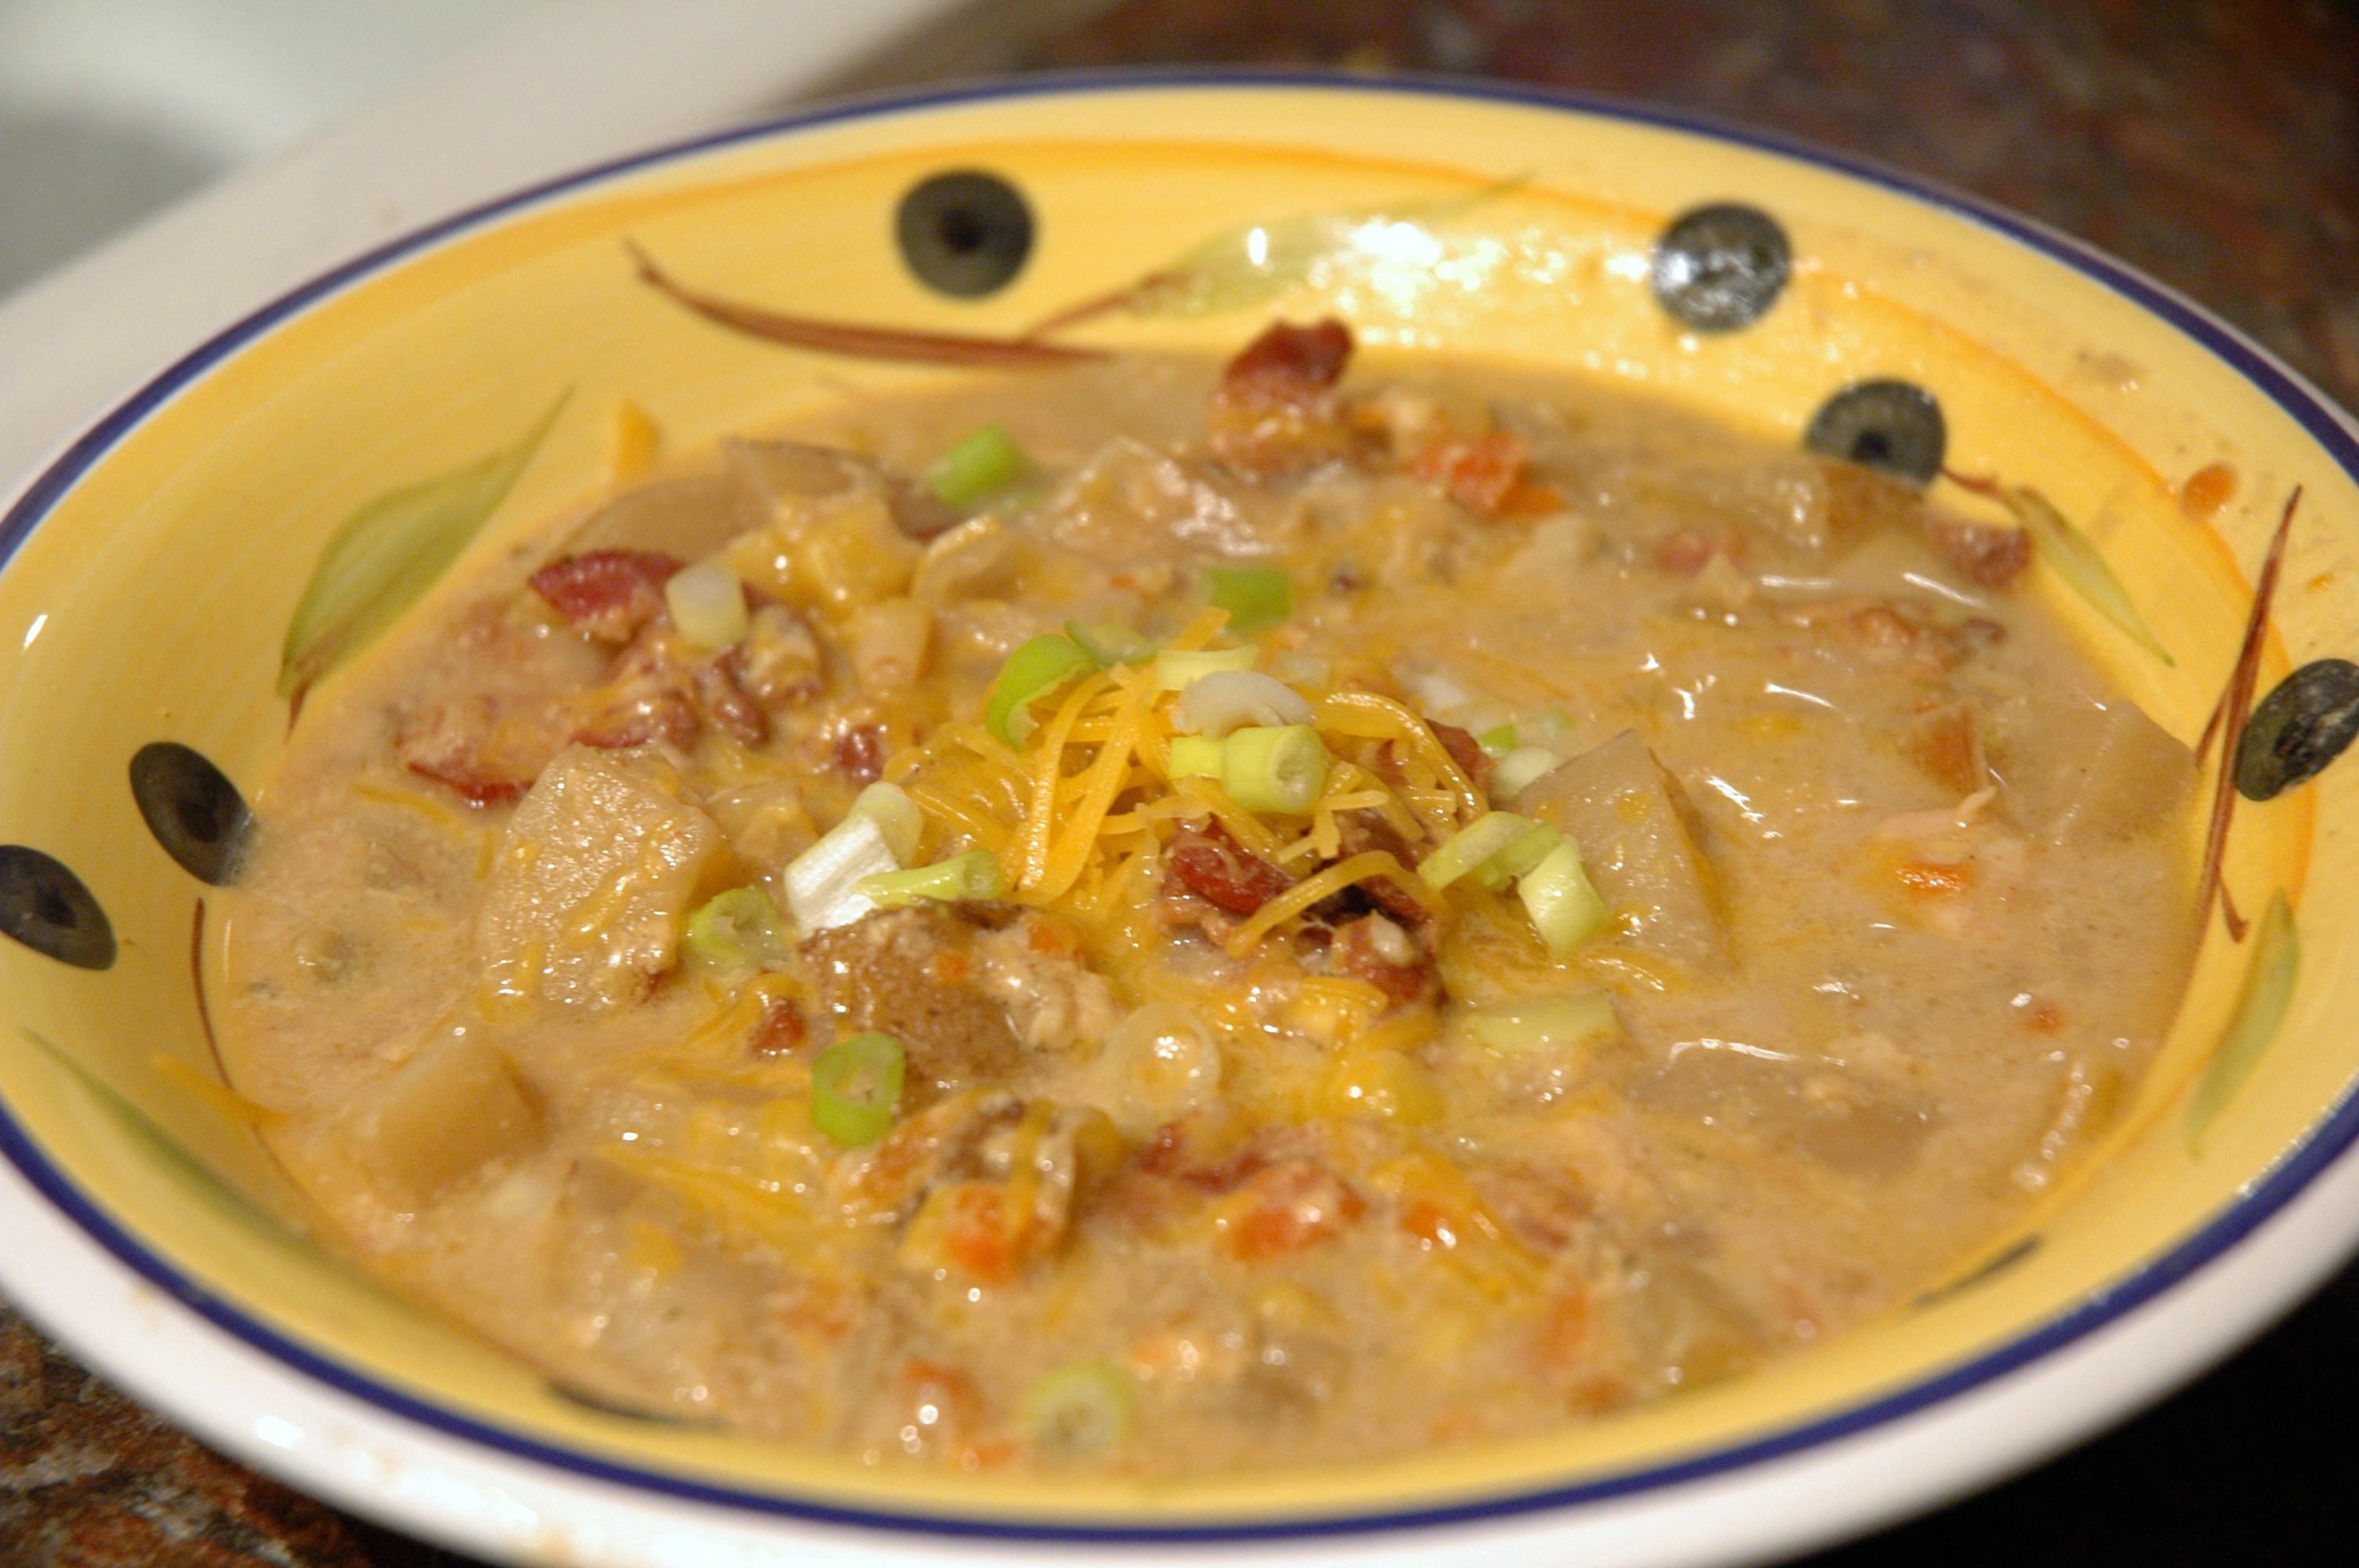 Loaded Baked Potato & Cheesy-Beer Soup